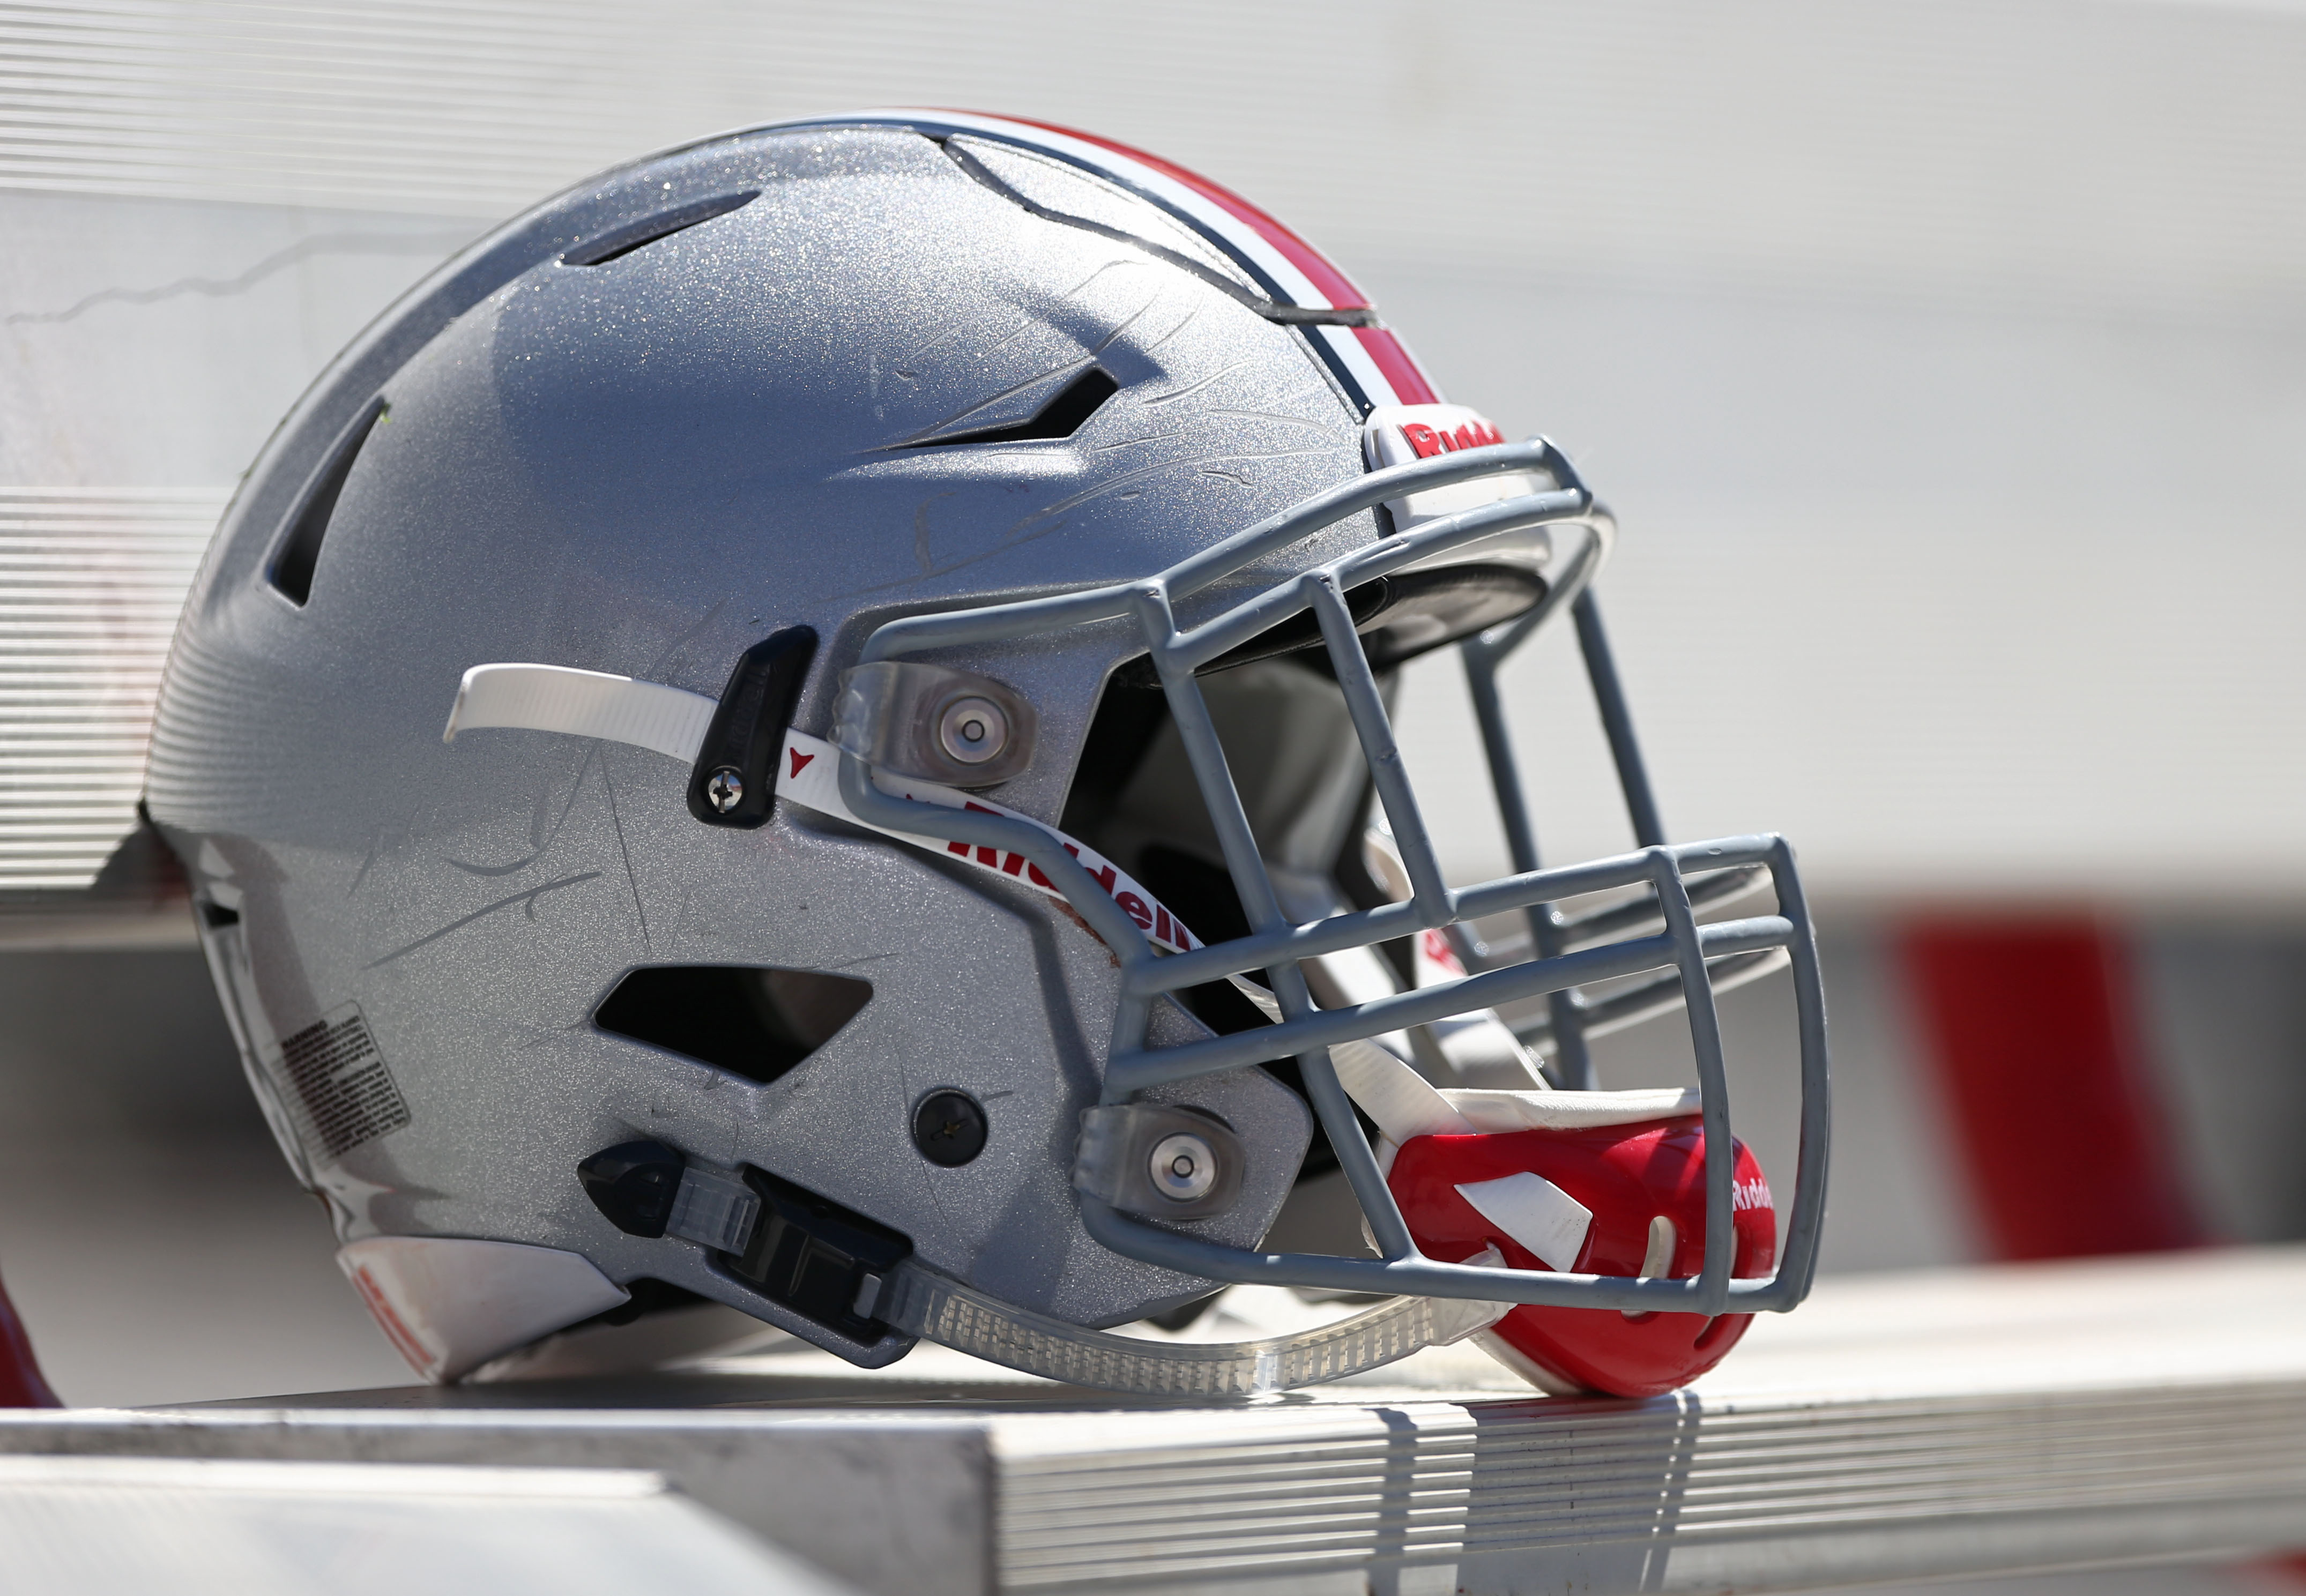 Apr 16, 2016; Columbus, OH, USA; A general view of an Ohio State football helmet on the sidelines during the Ohio State Spring Game at Ohio Stadium. Mandatory Credit: Aaron Doster-USA TODAY Sports